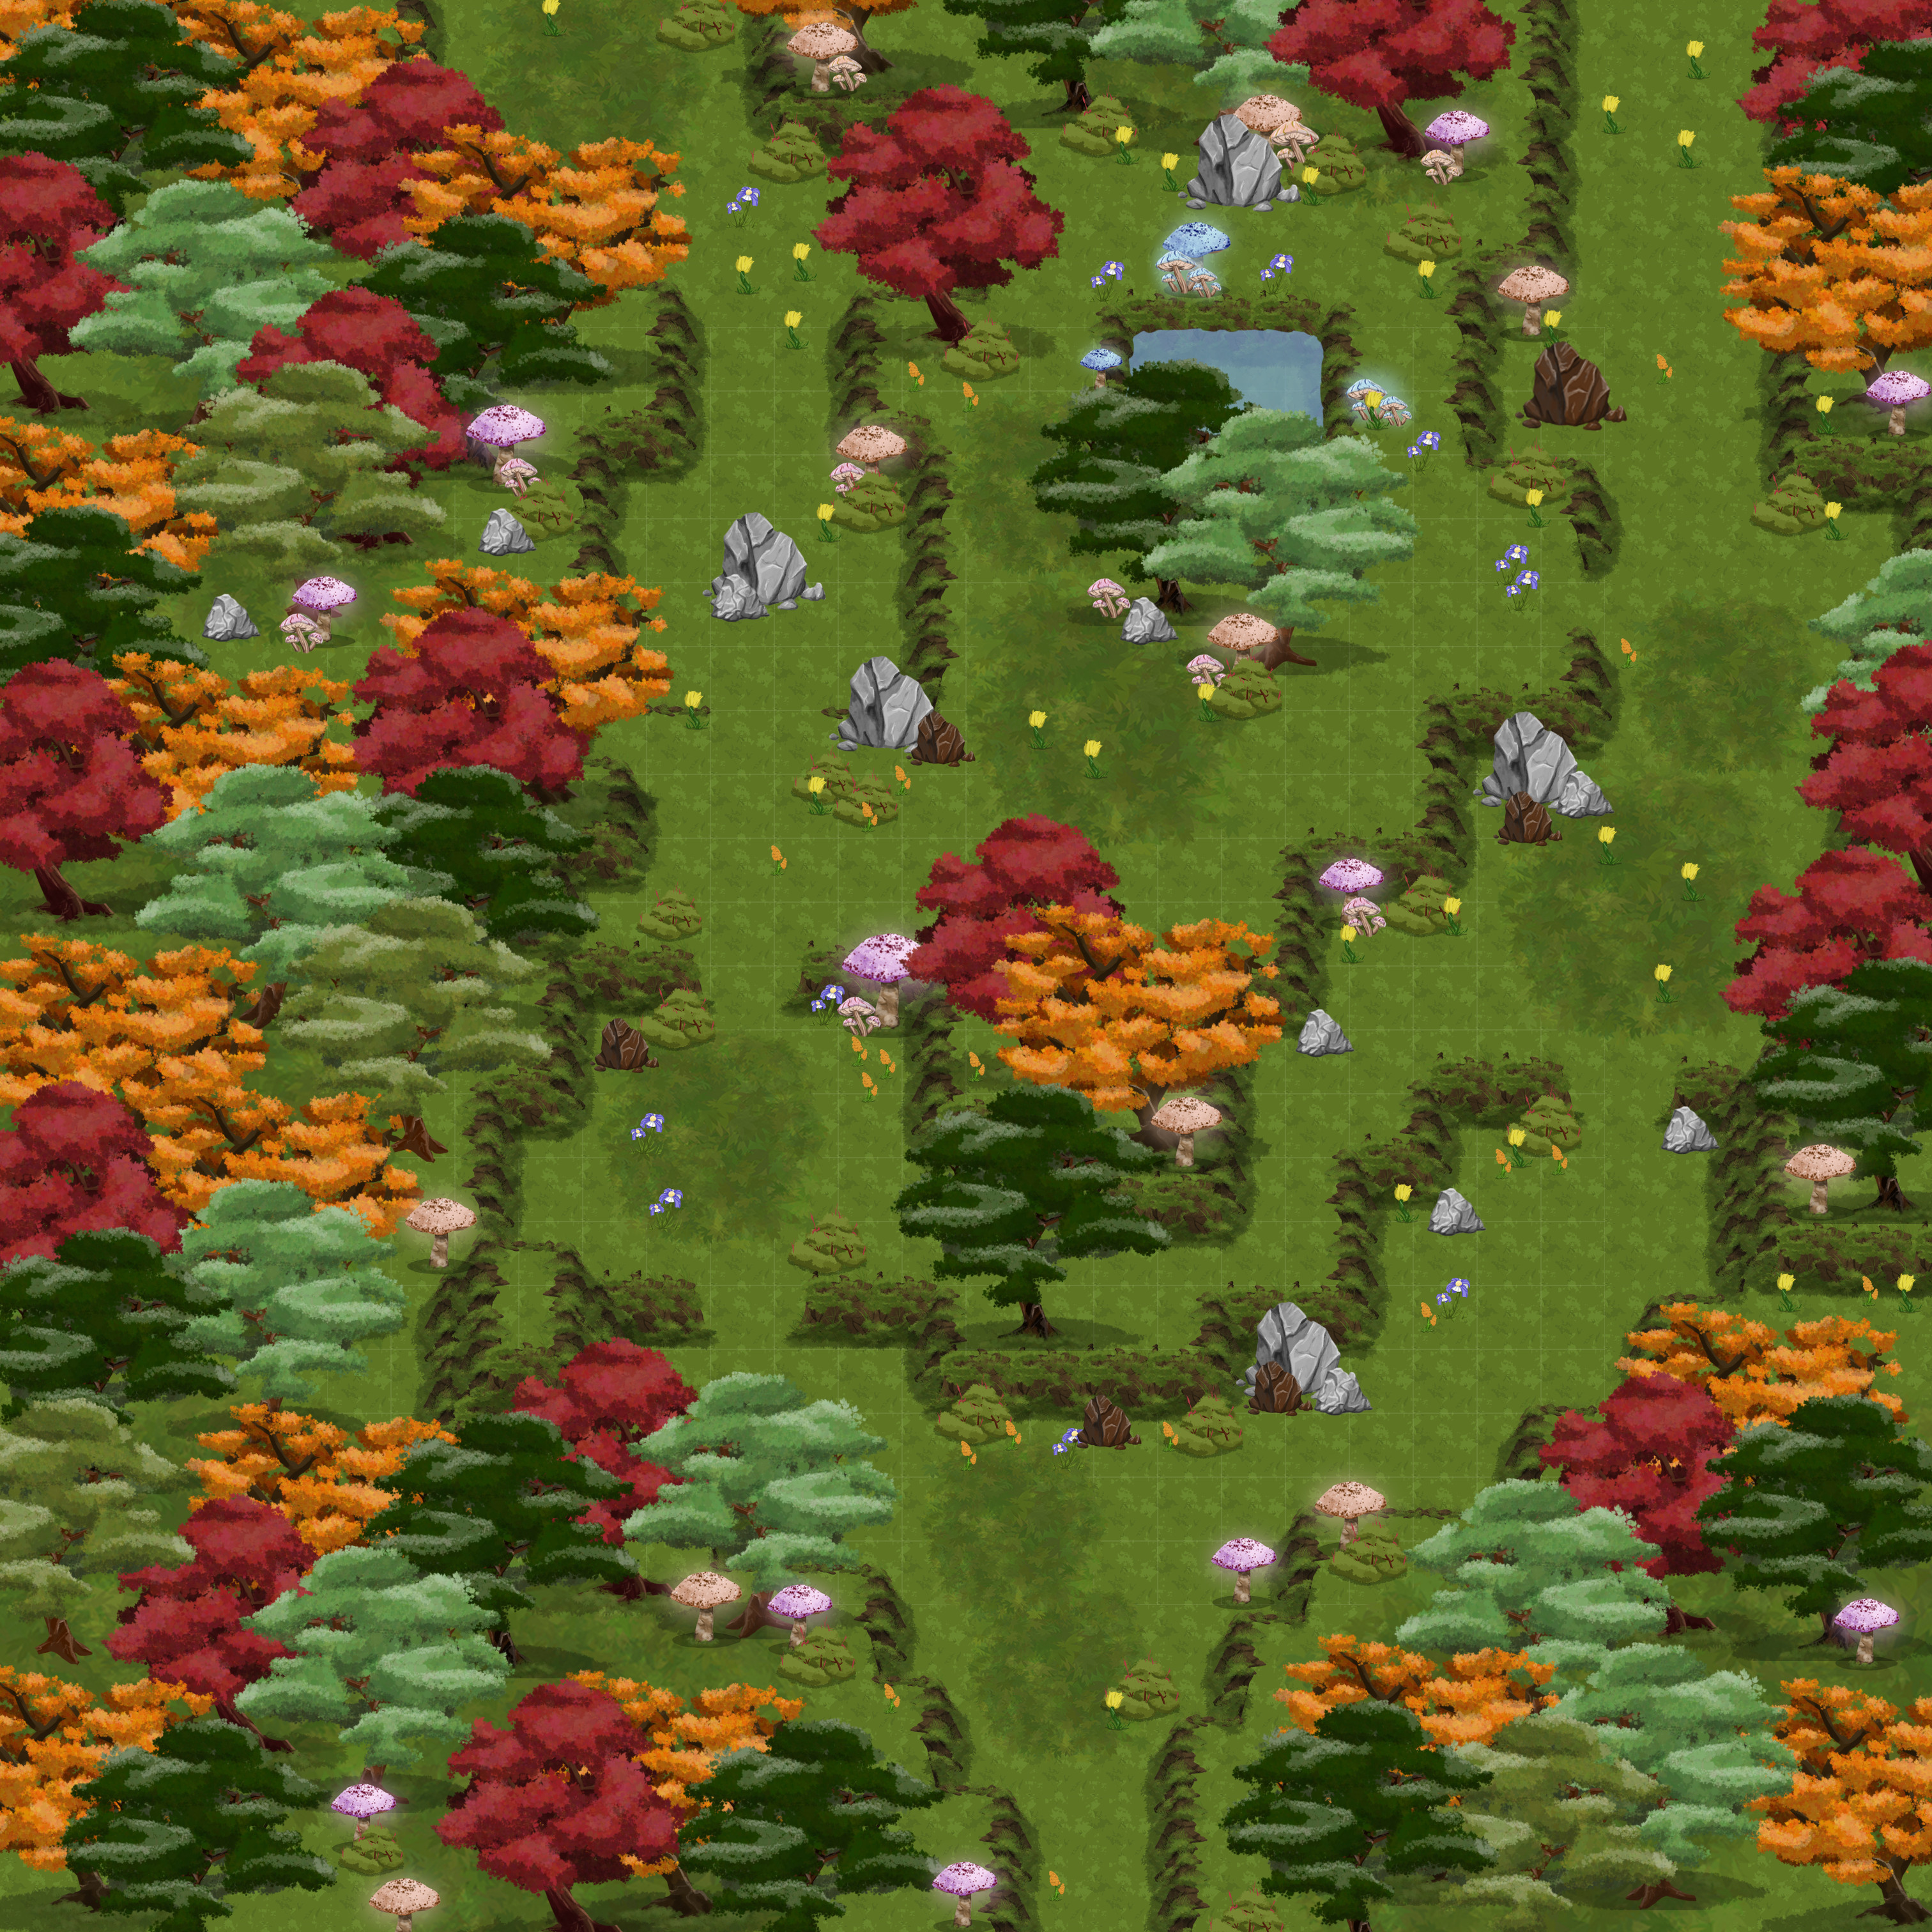 Example of Forest Overhaul